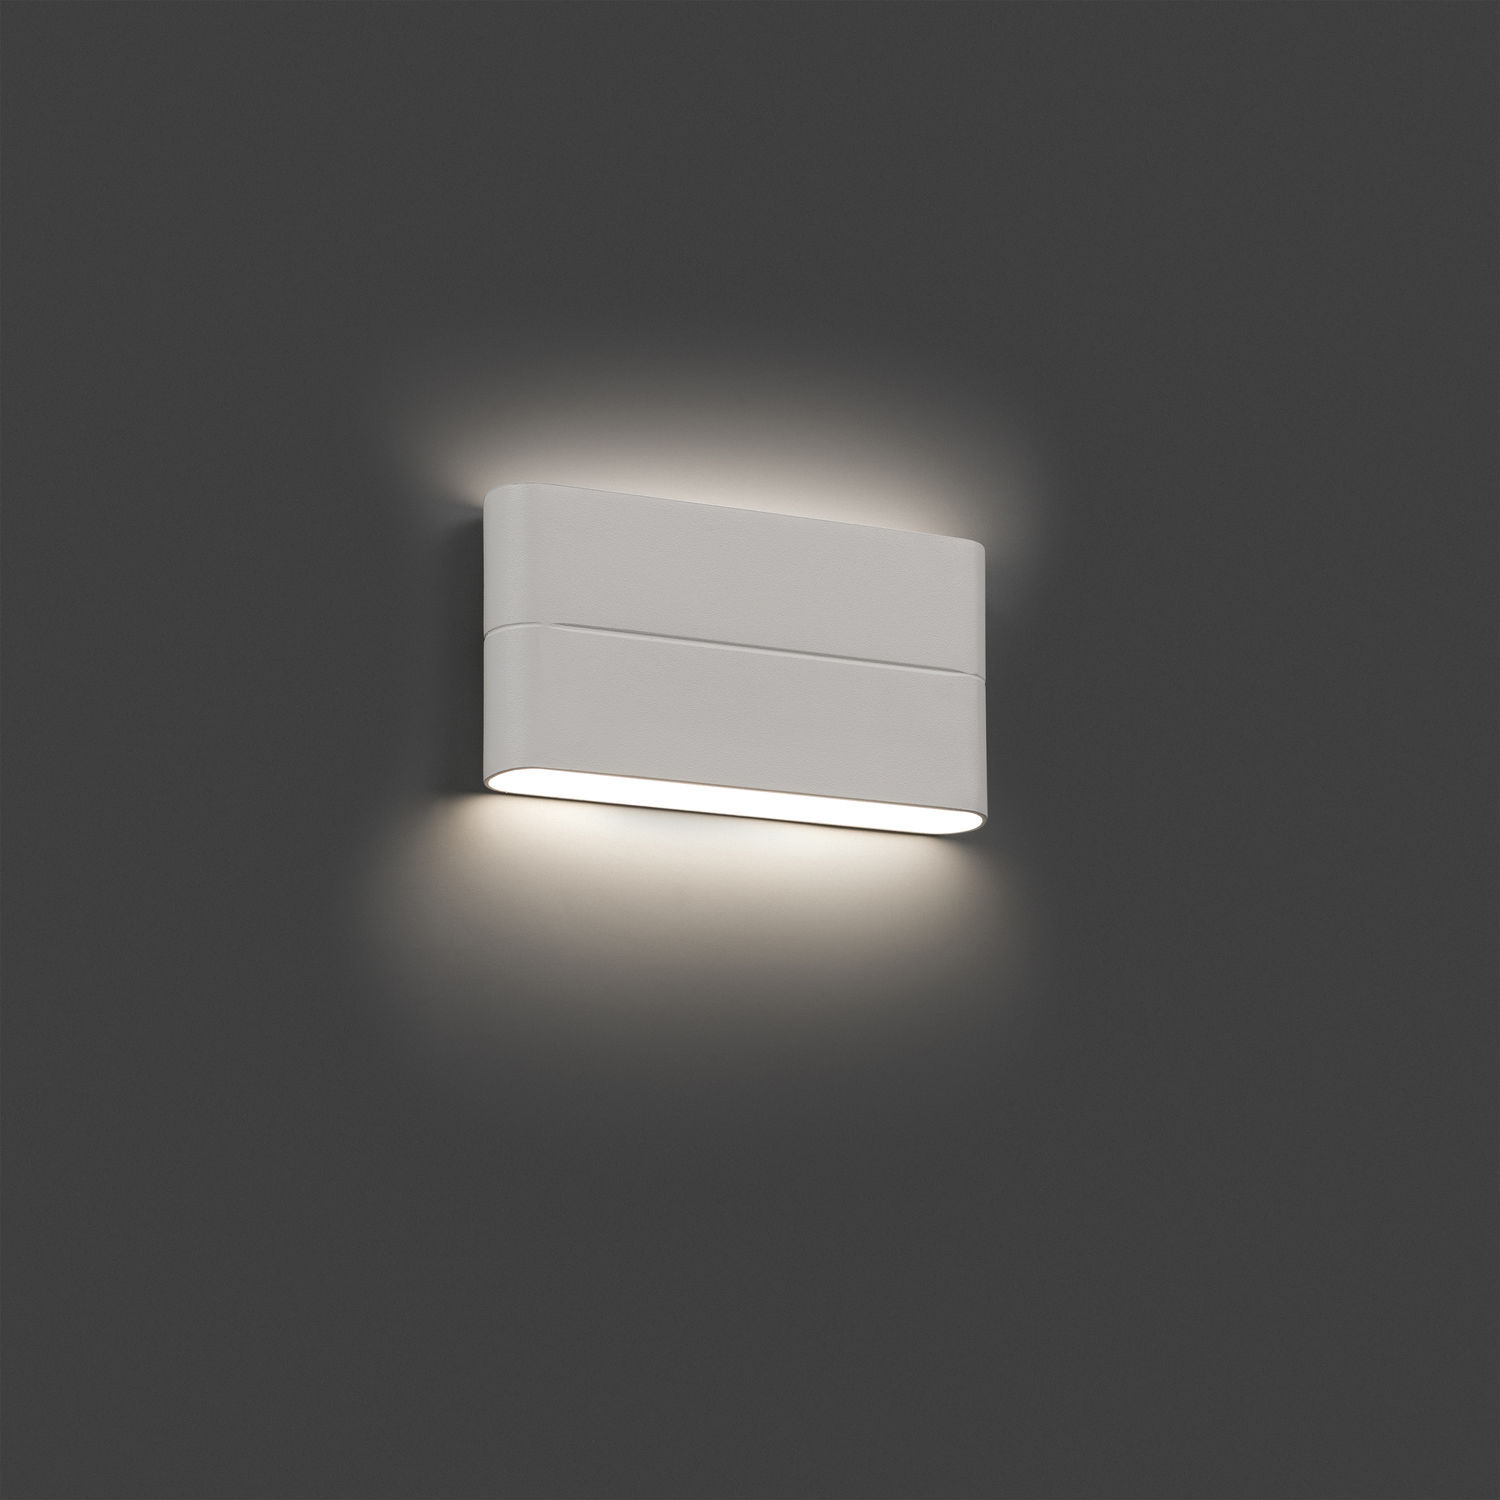 Applique murale d 39 ext rieur aday 2 led ip54 blanc l17 for Applique murale exterieur